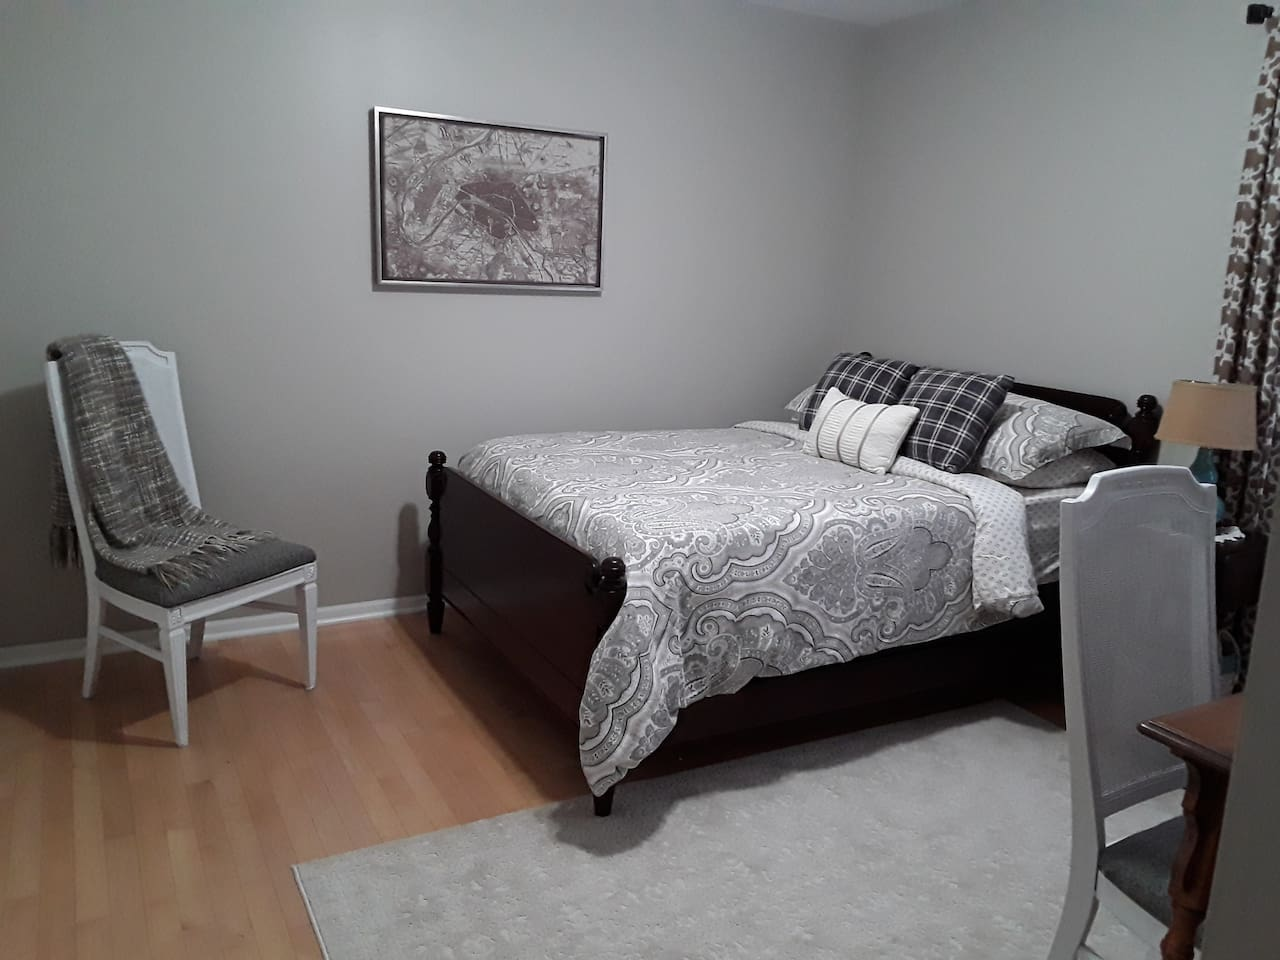 Full size bed with memory foam topper.